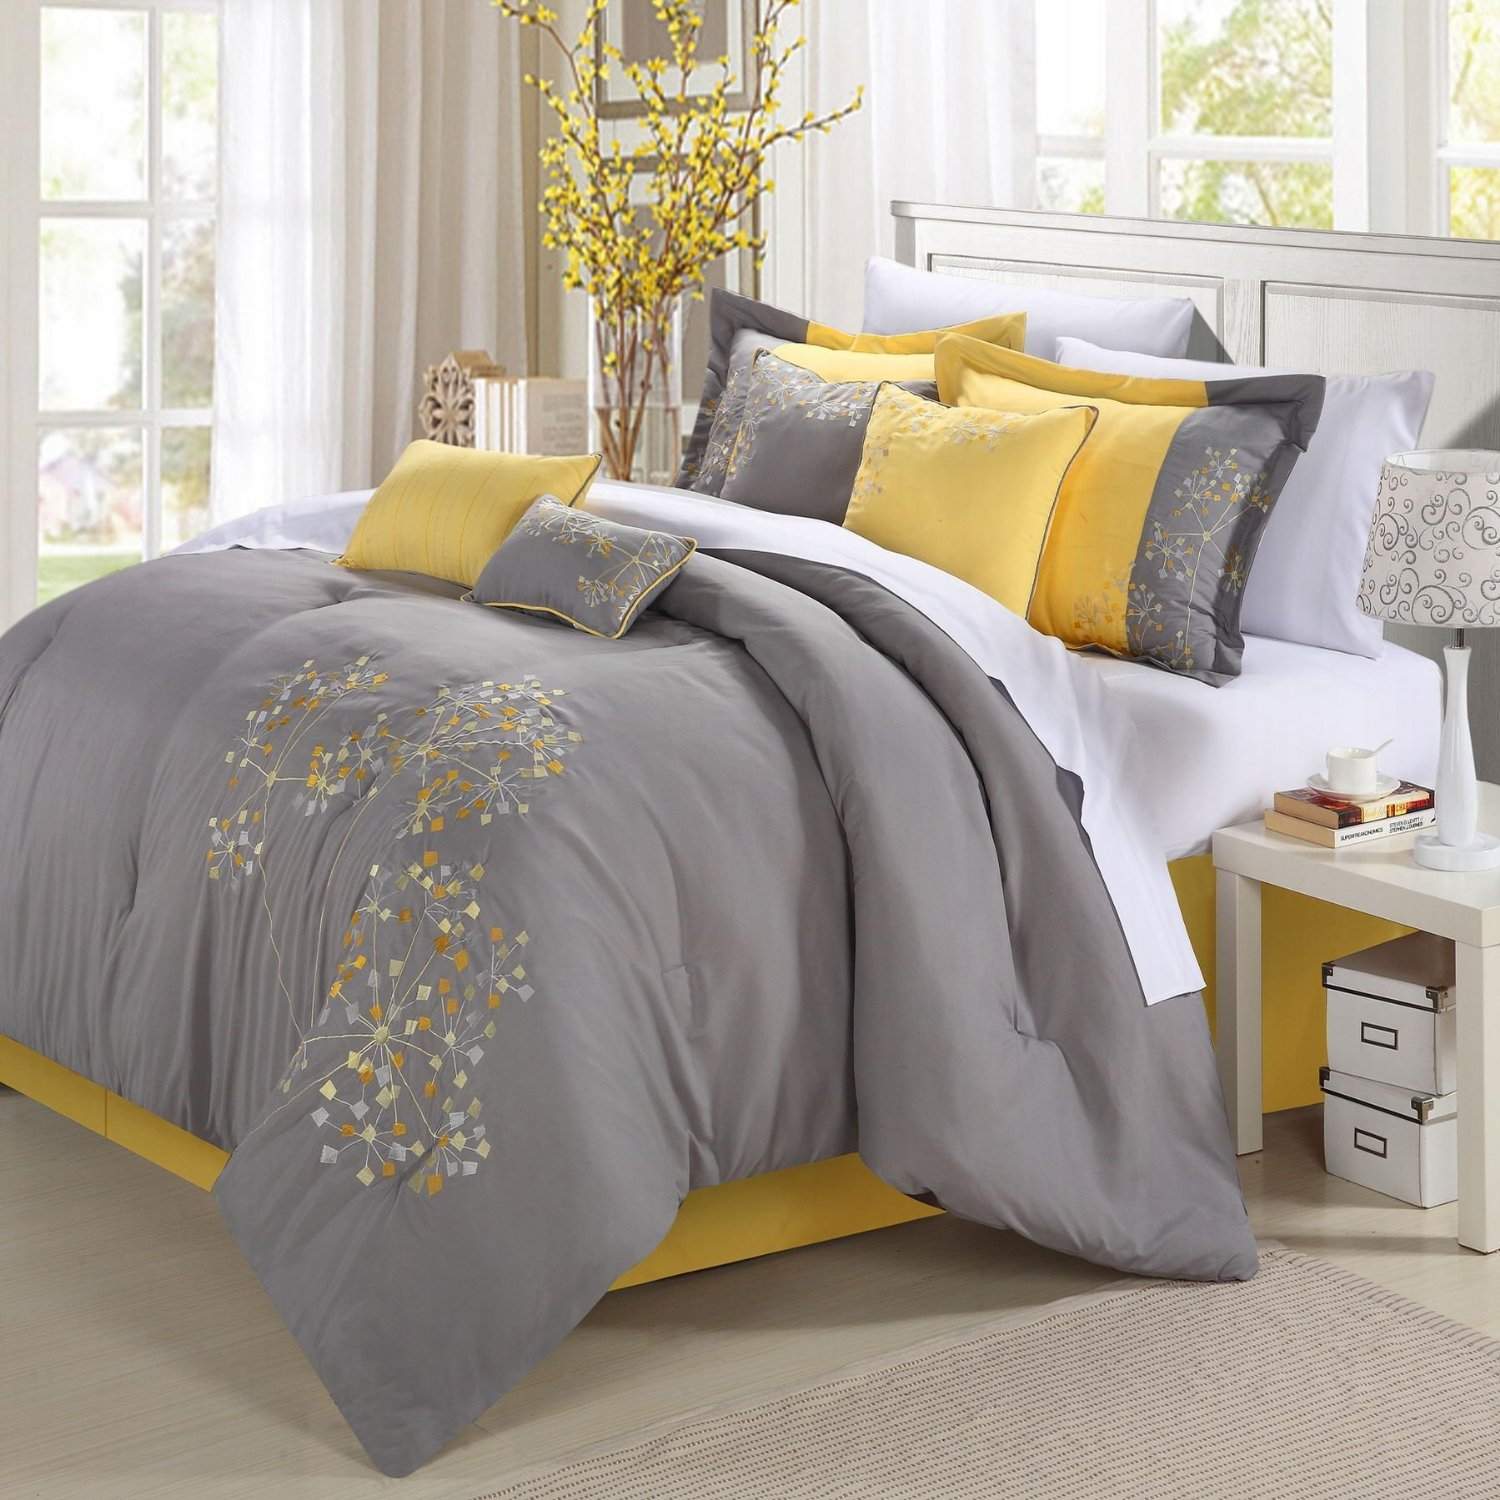 Bedroom Design Grey And Yellow Yellow And Gray Bedding That Will Make Your Bedroom Pop